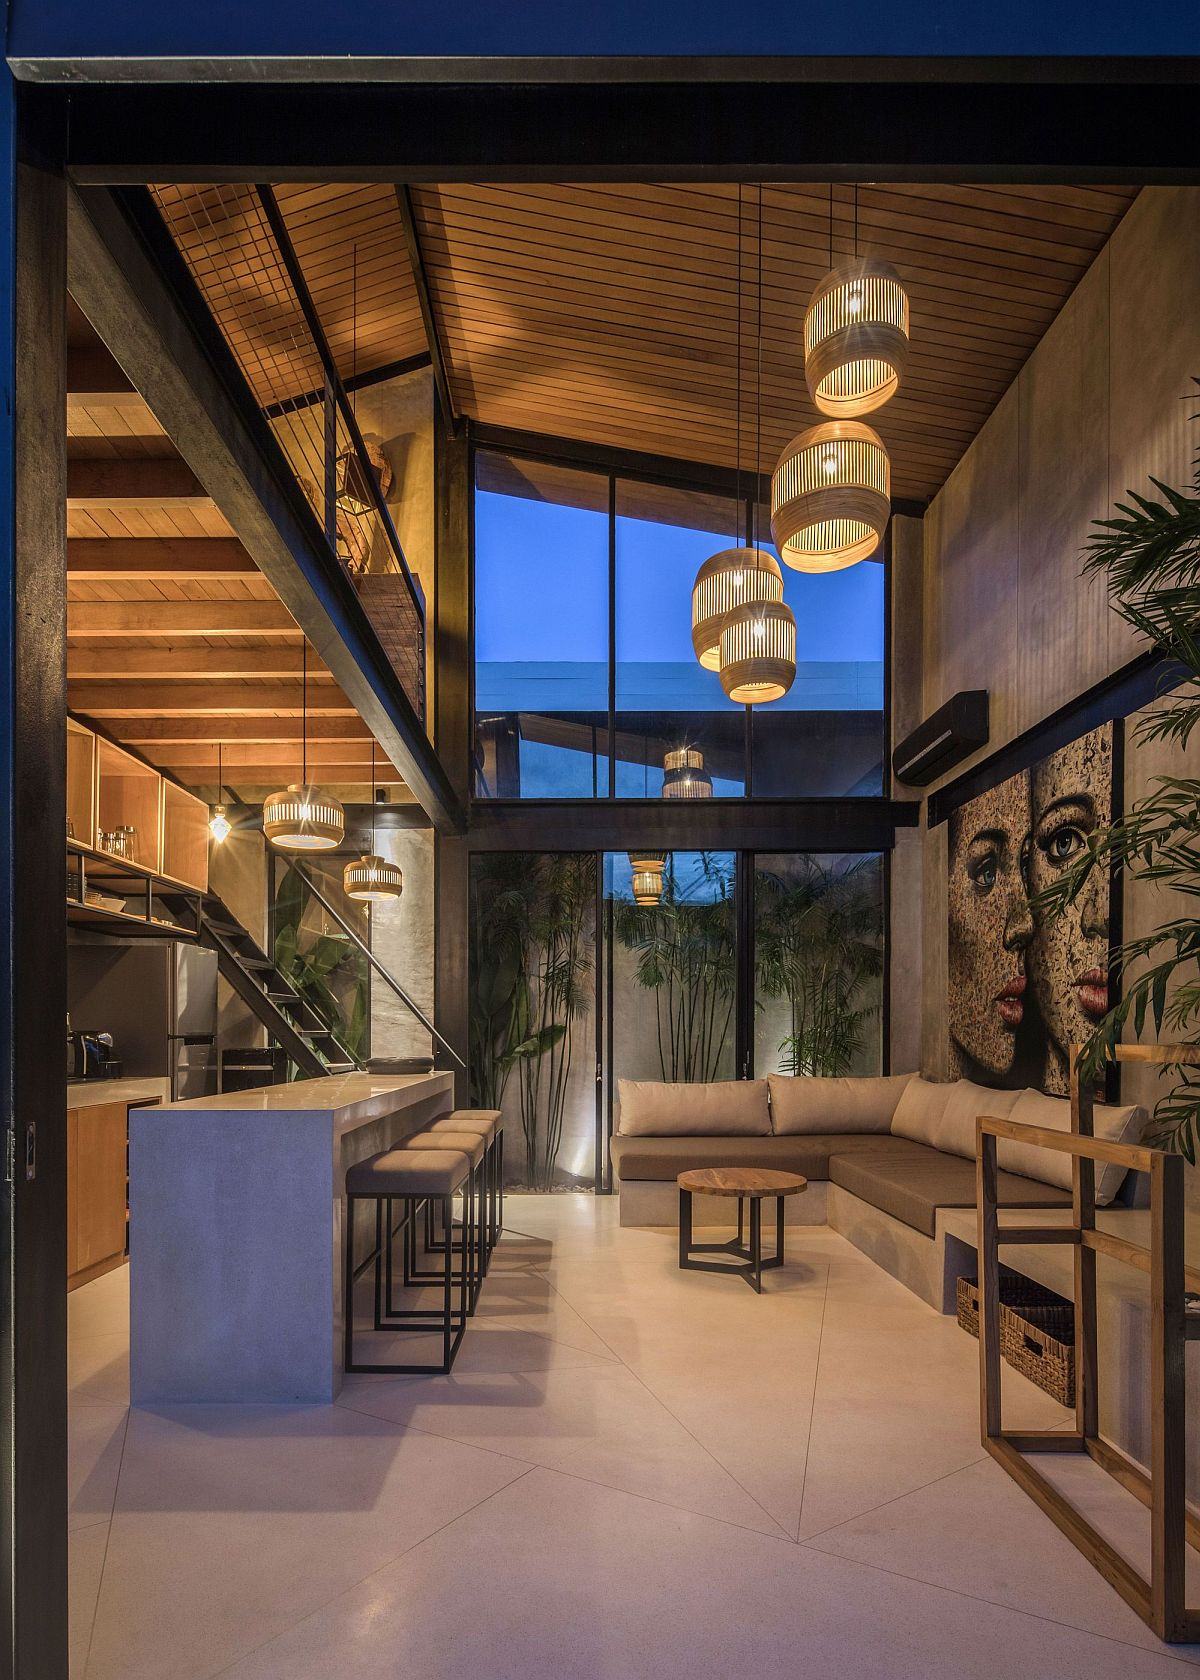 Double-height living area and kitchen of the house with fabulous lighting